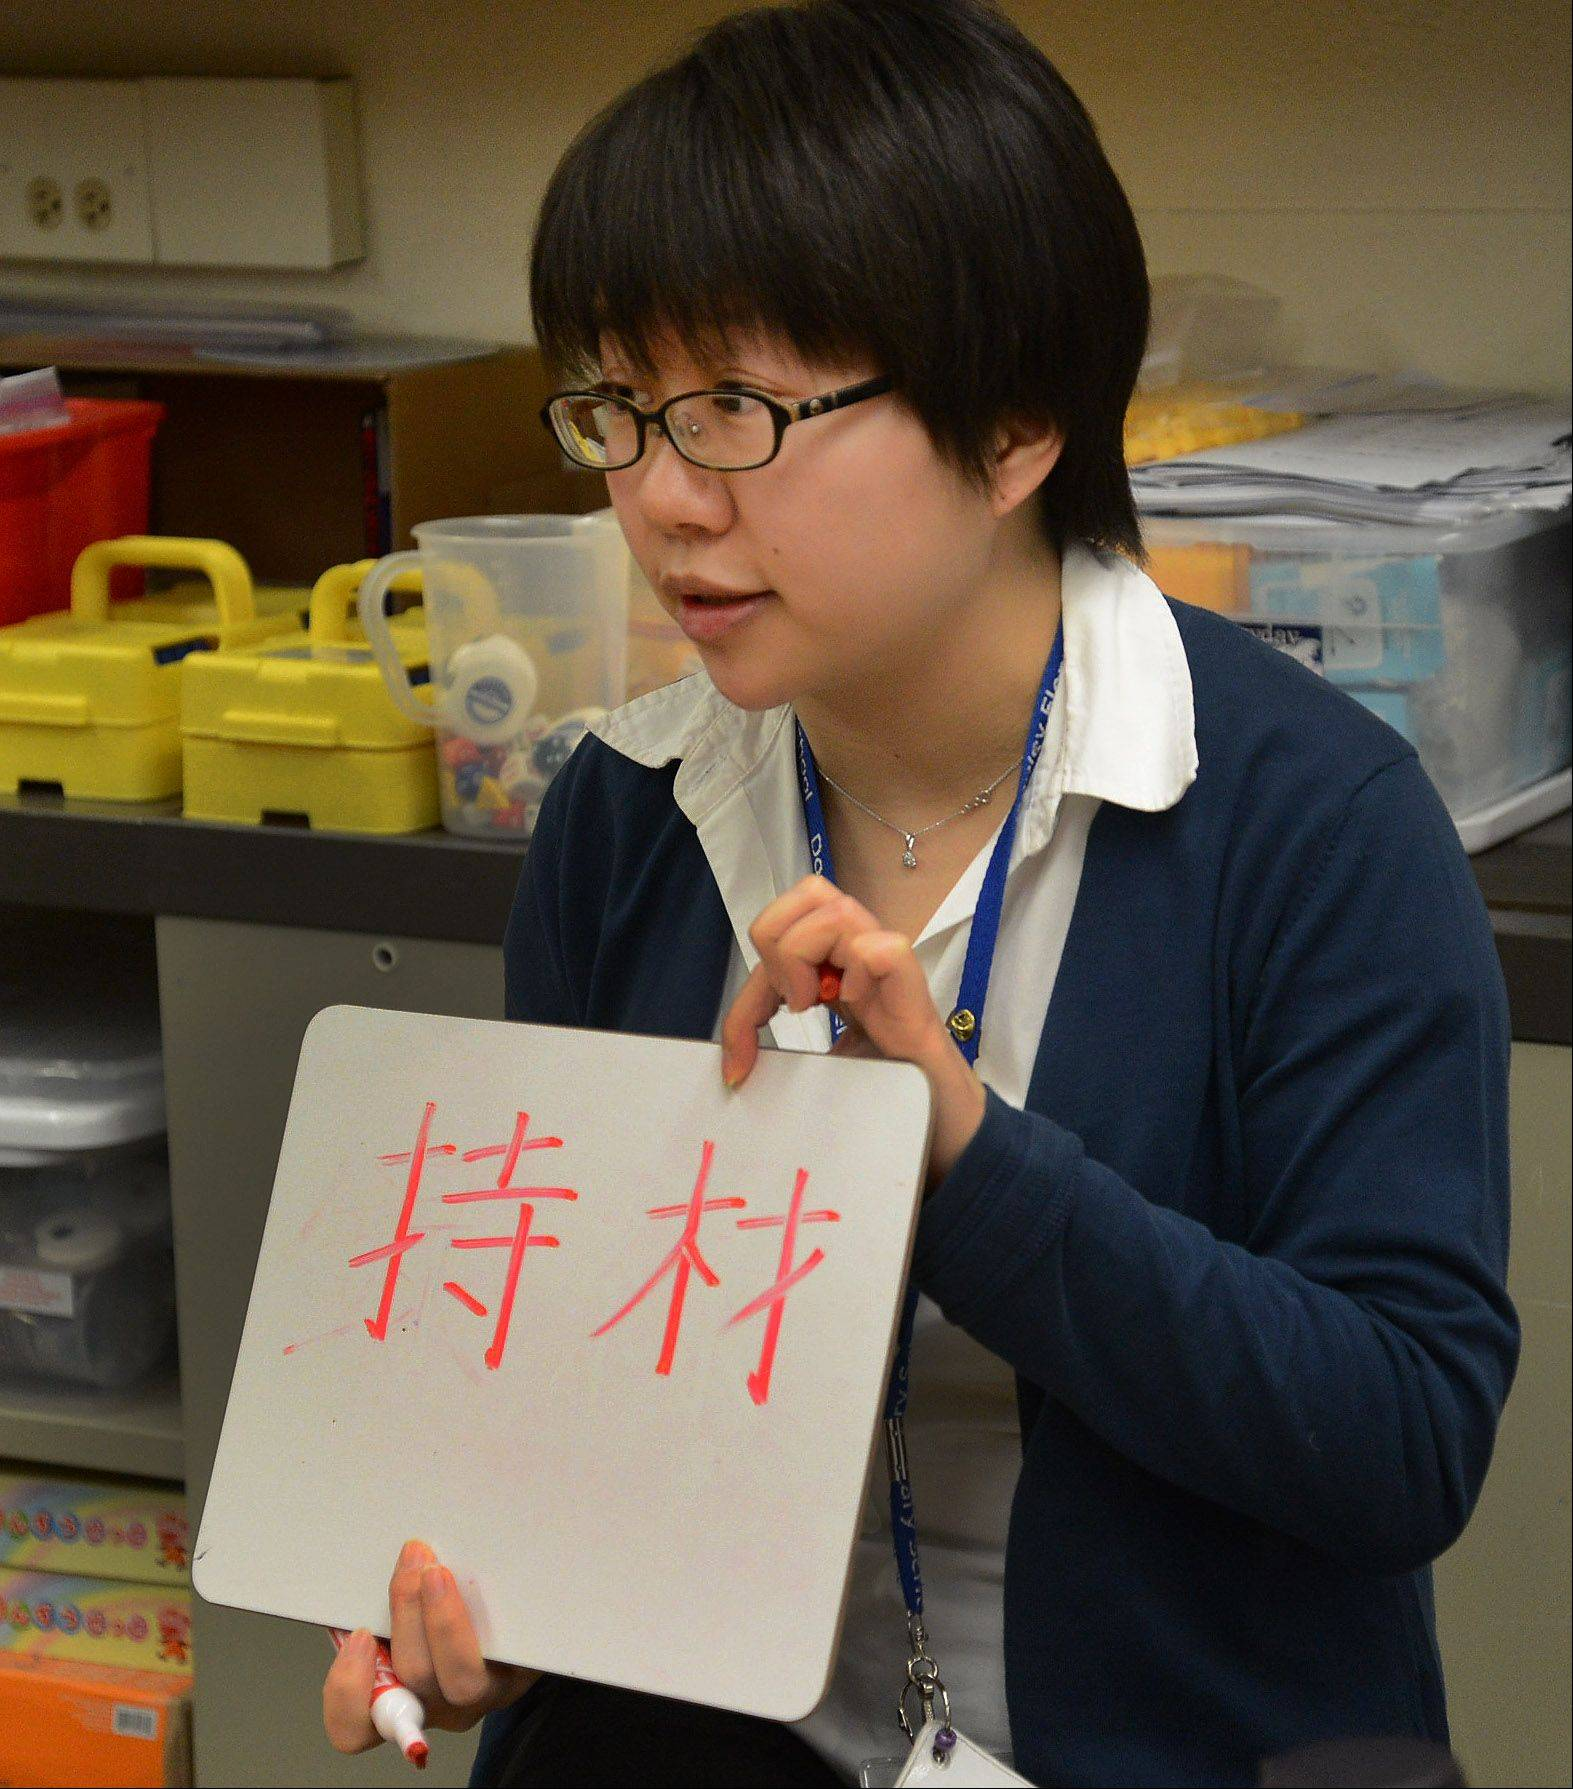 Naoko Sanders teaches a class of fourth-graders in Dooley Elementary School's dual language program in Schaumburg, which offers Japanese- and English-speaking students the opportunity to become biliterate, bilingual and bicultural.